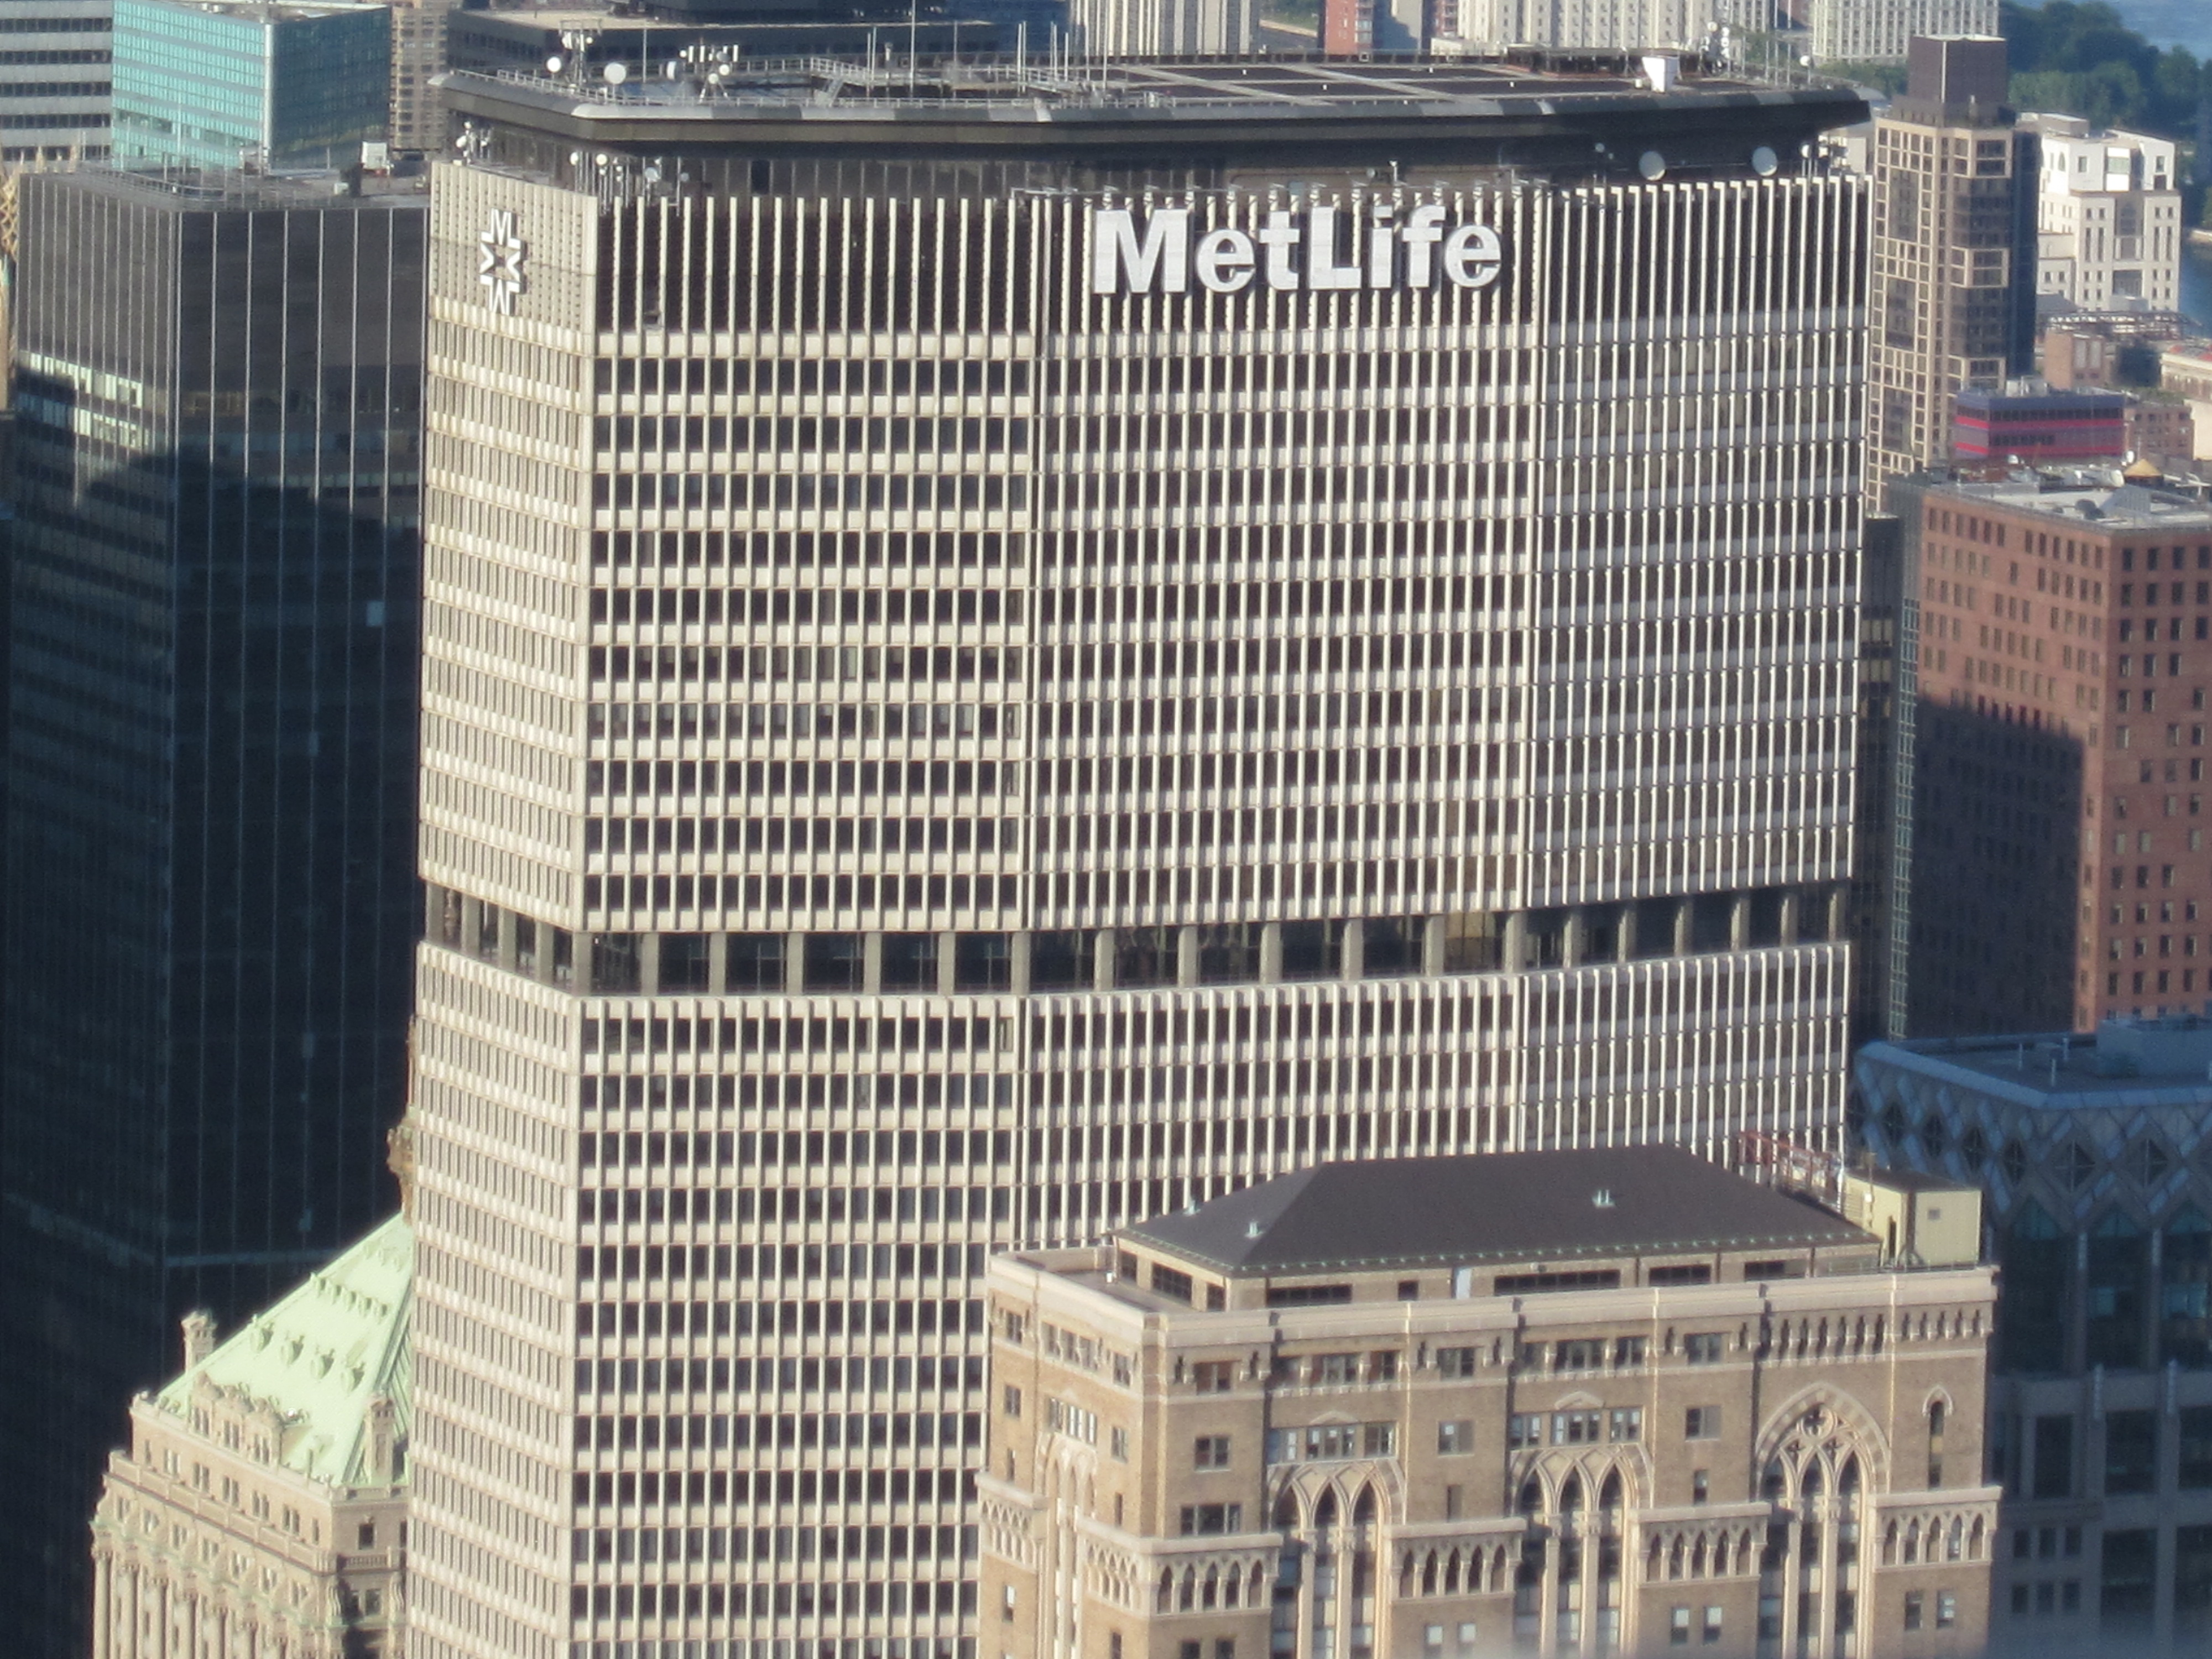 pan am building helicopter crash with Metlife Insurance Co Usa Files Sec Form 8 K Current Report Nov 20 2014 on 22569 besides Umtrack1 also Metlife Insurance Co Usa Files Sec Form 8 K Current Report Nov 20 2014 additionally Photo search likewise 5601afc5e58ece093300004b Reimagine 200 Park Avenue Photo.